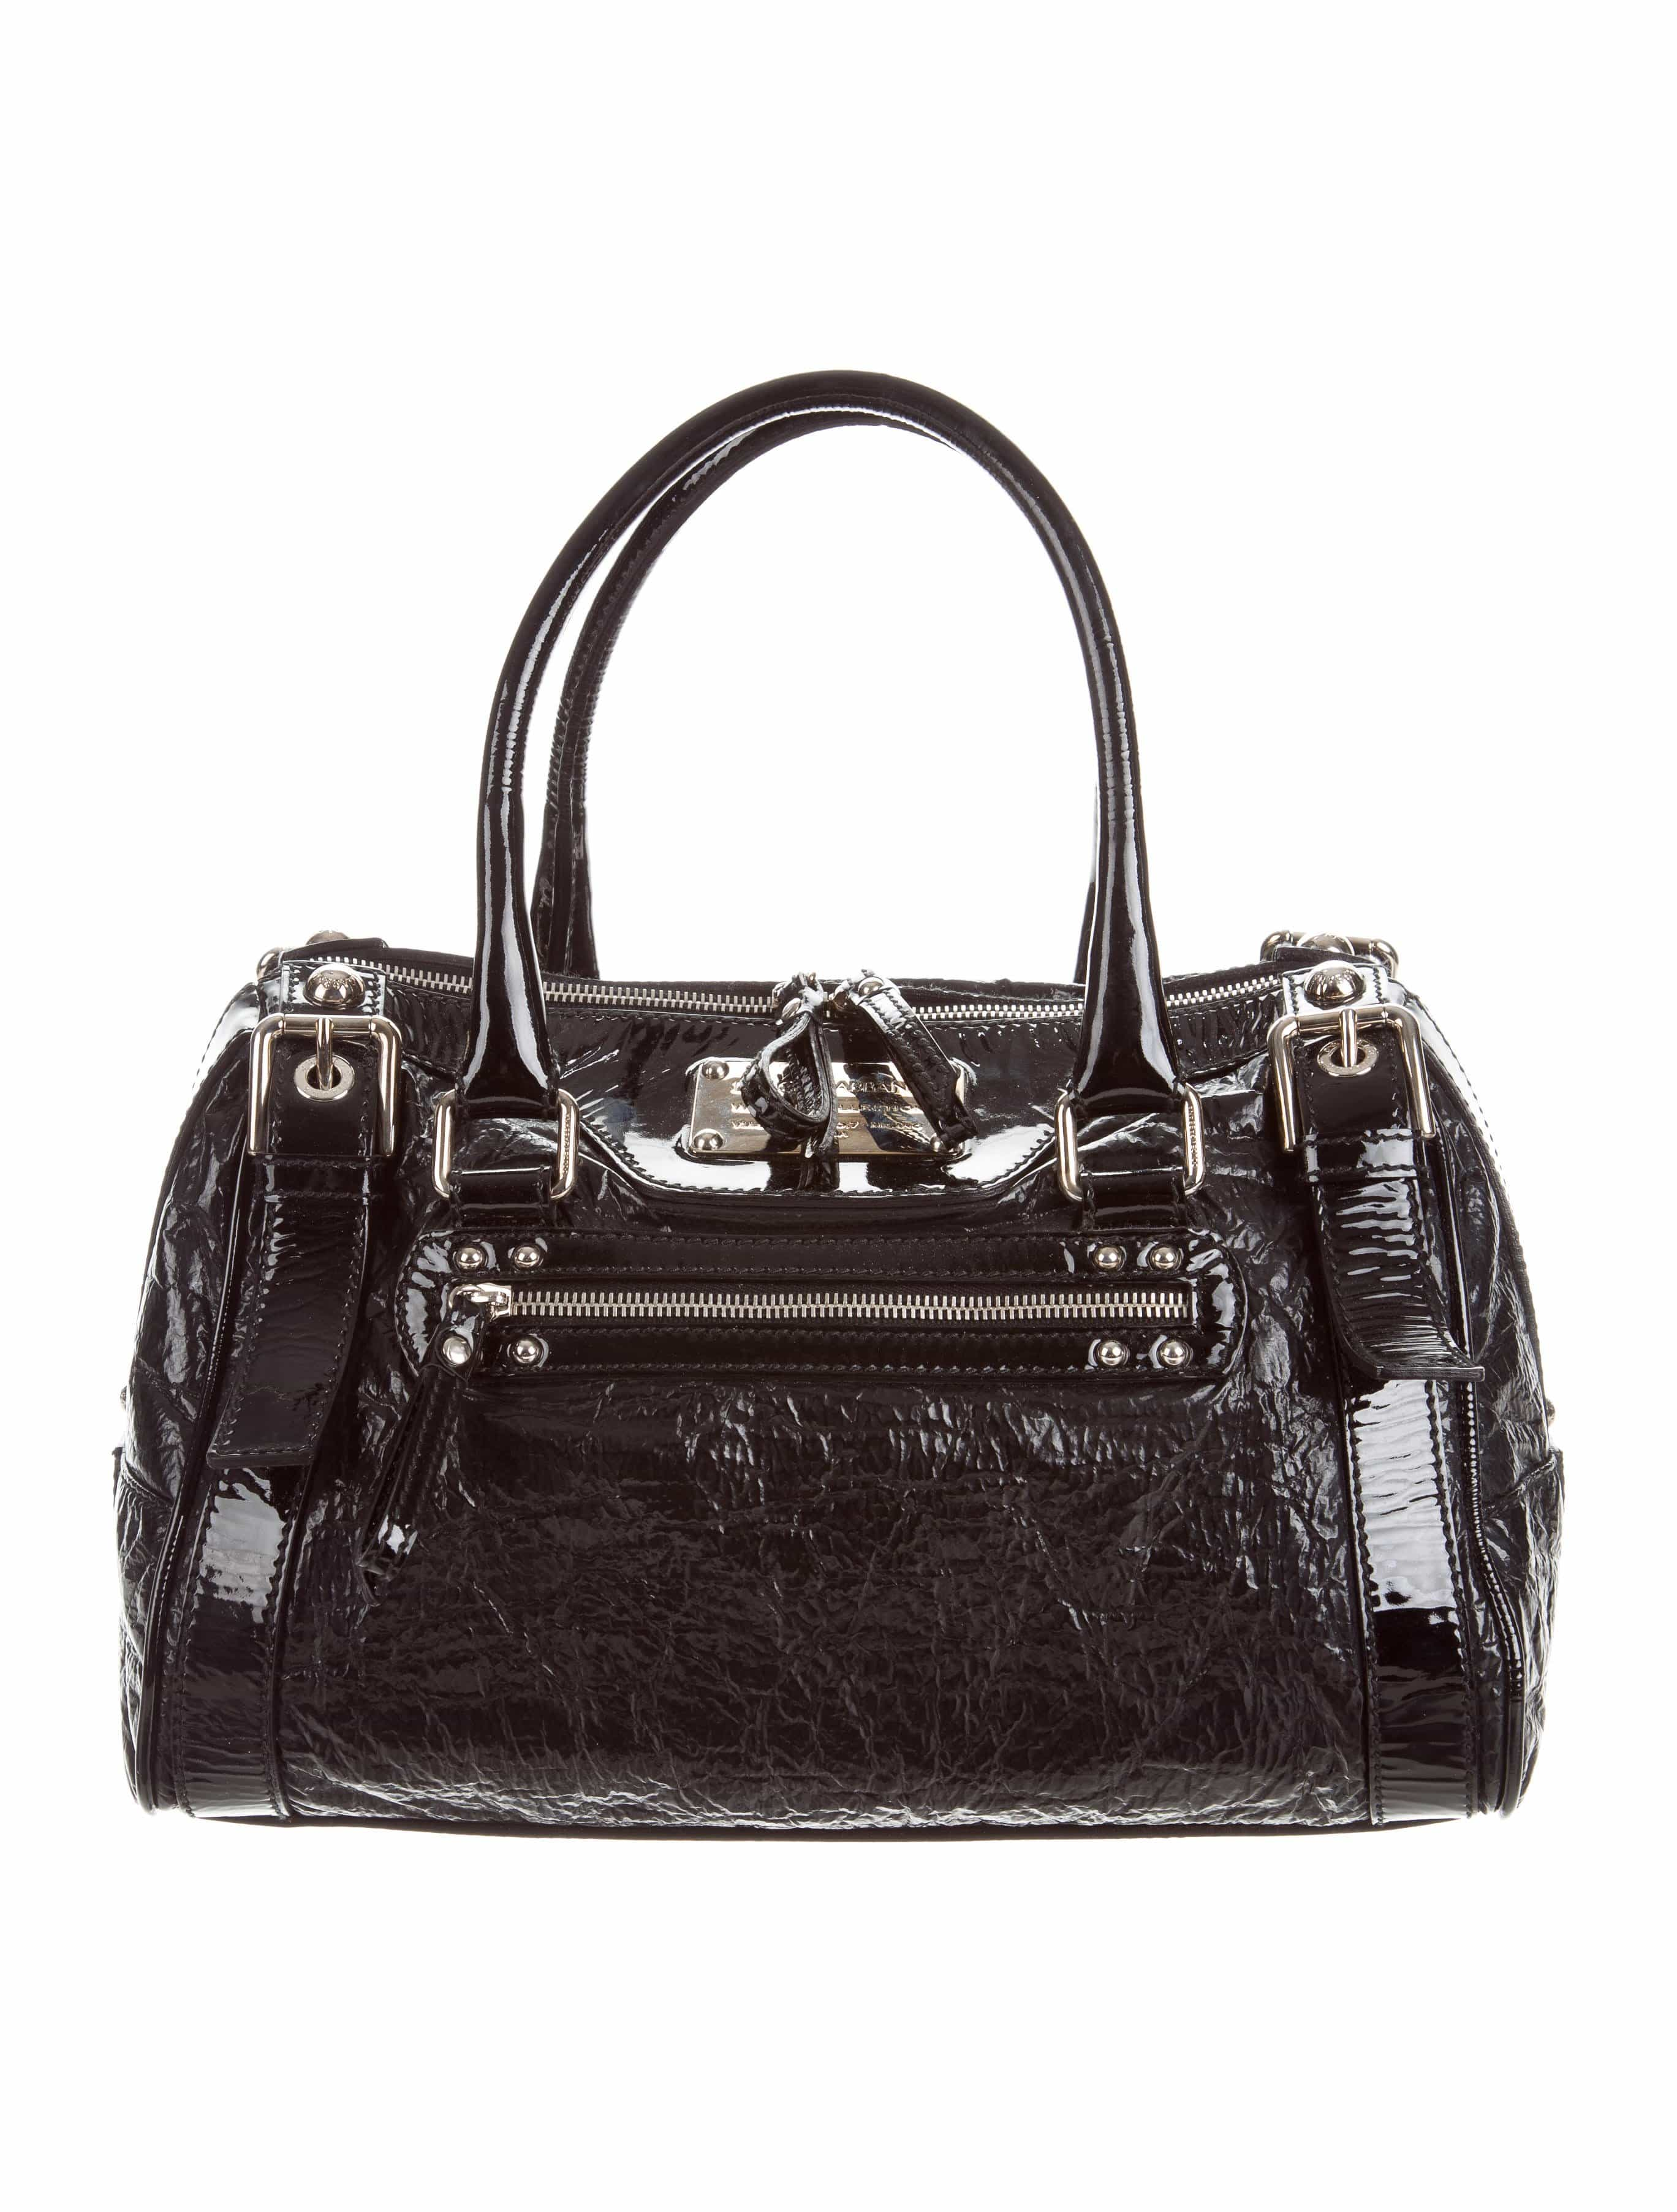 96b30752a60b Black Patent Leather Dolce   Gabbana Miss Easy Way Bag With Silver-Tone  Hardware – Parvinu